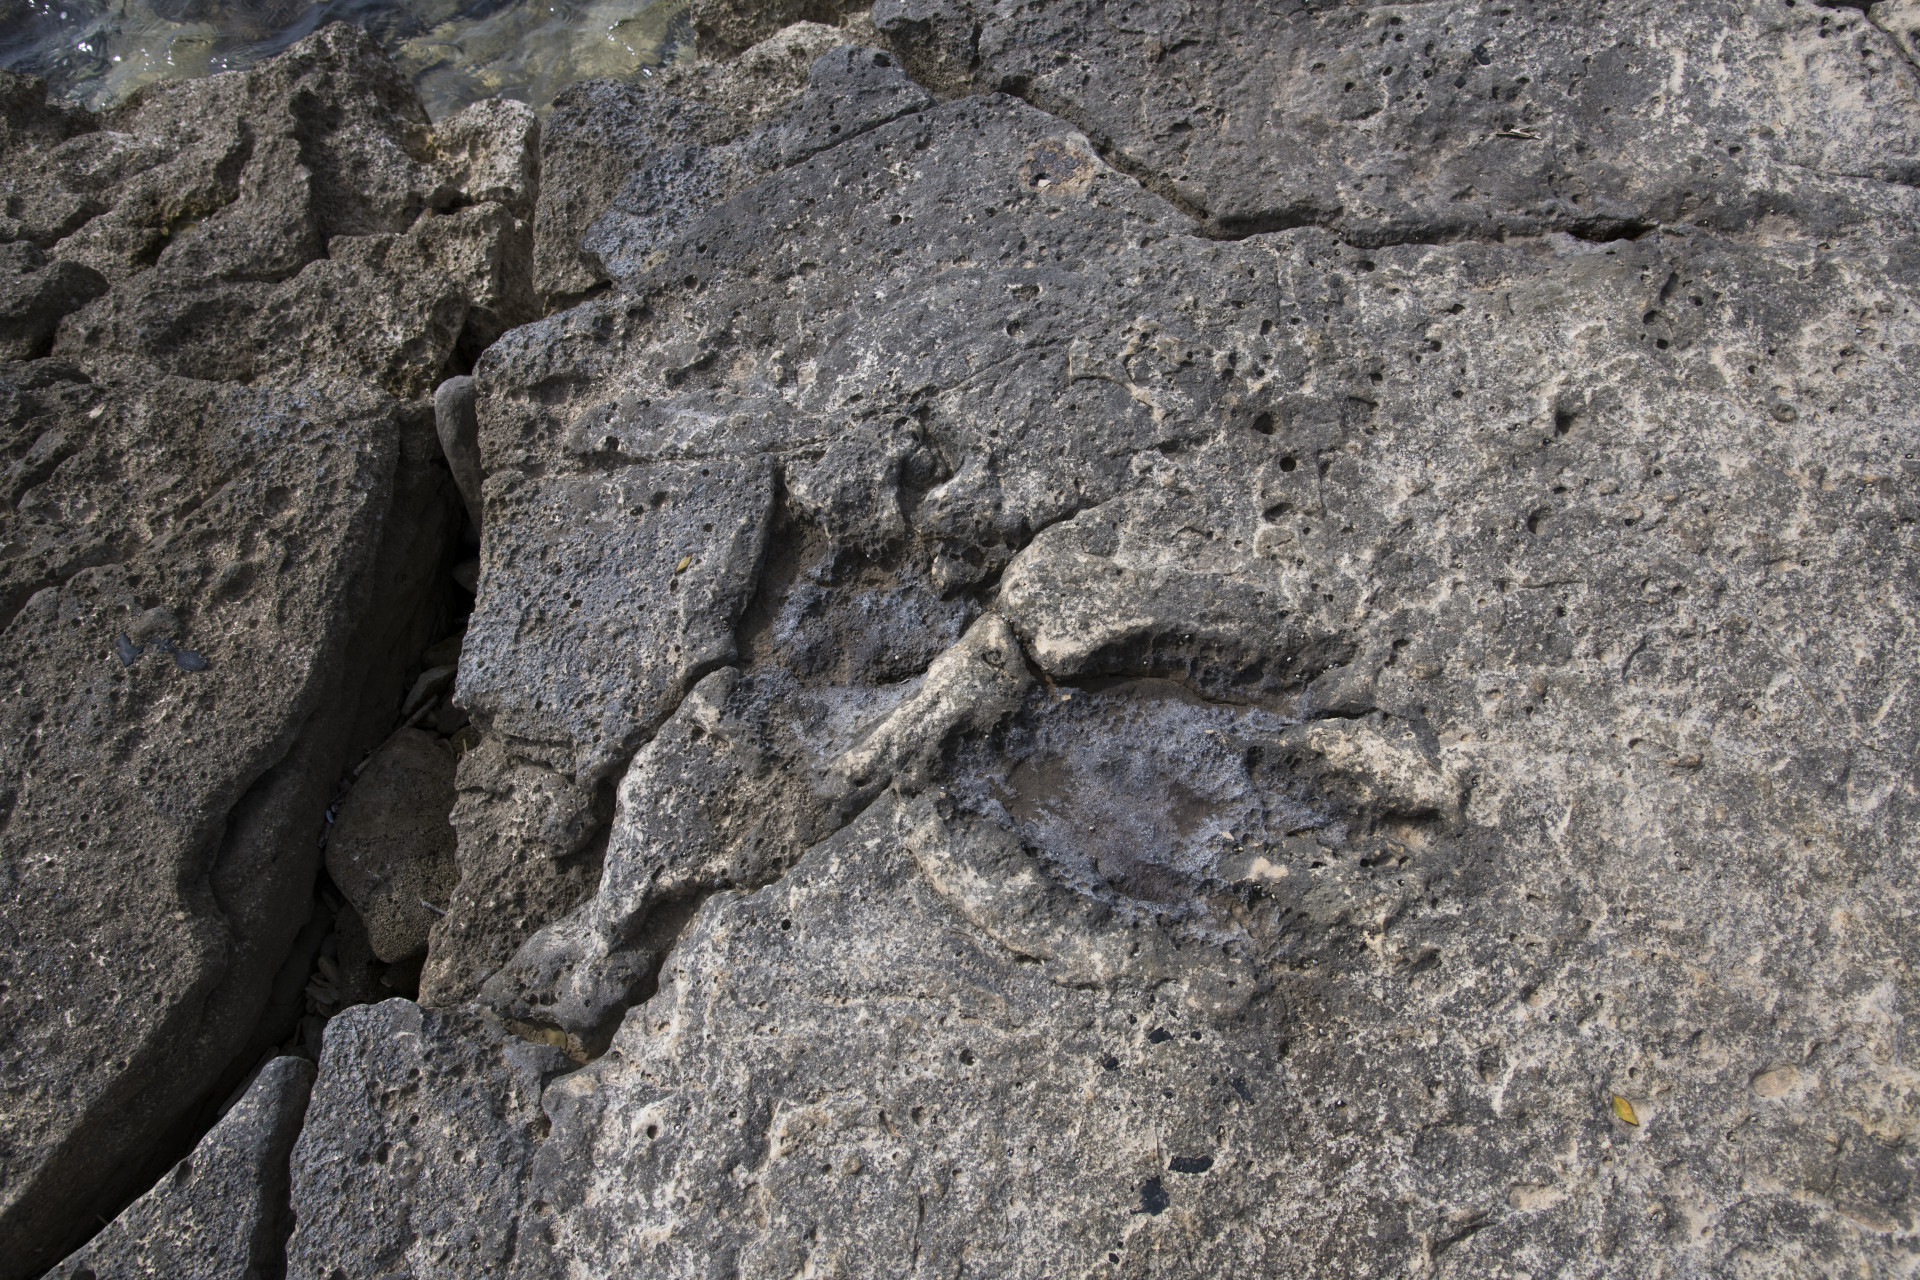 Dinosaur footprints and bones discovered on Brijuni become first protected fossil in Croatia